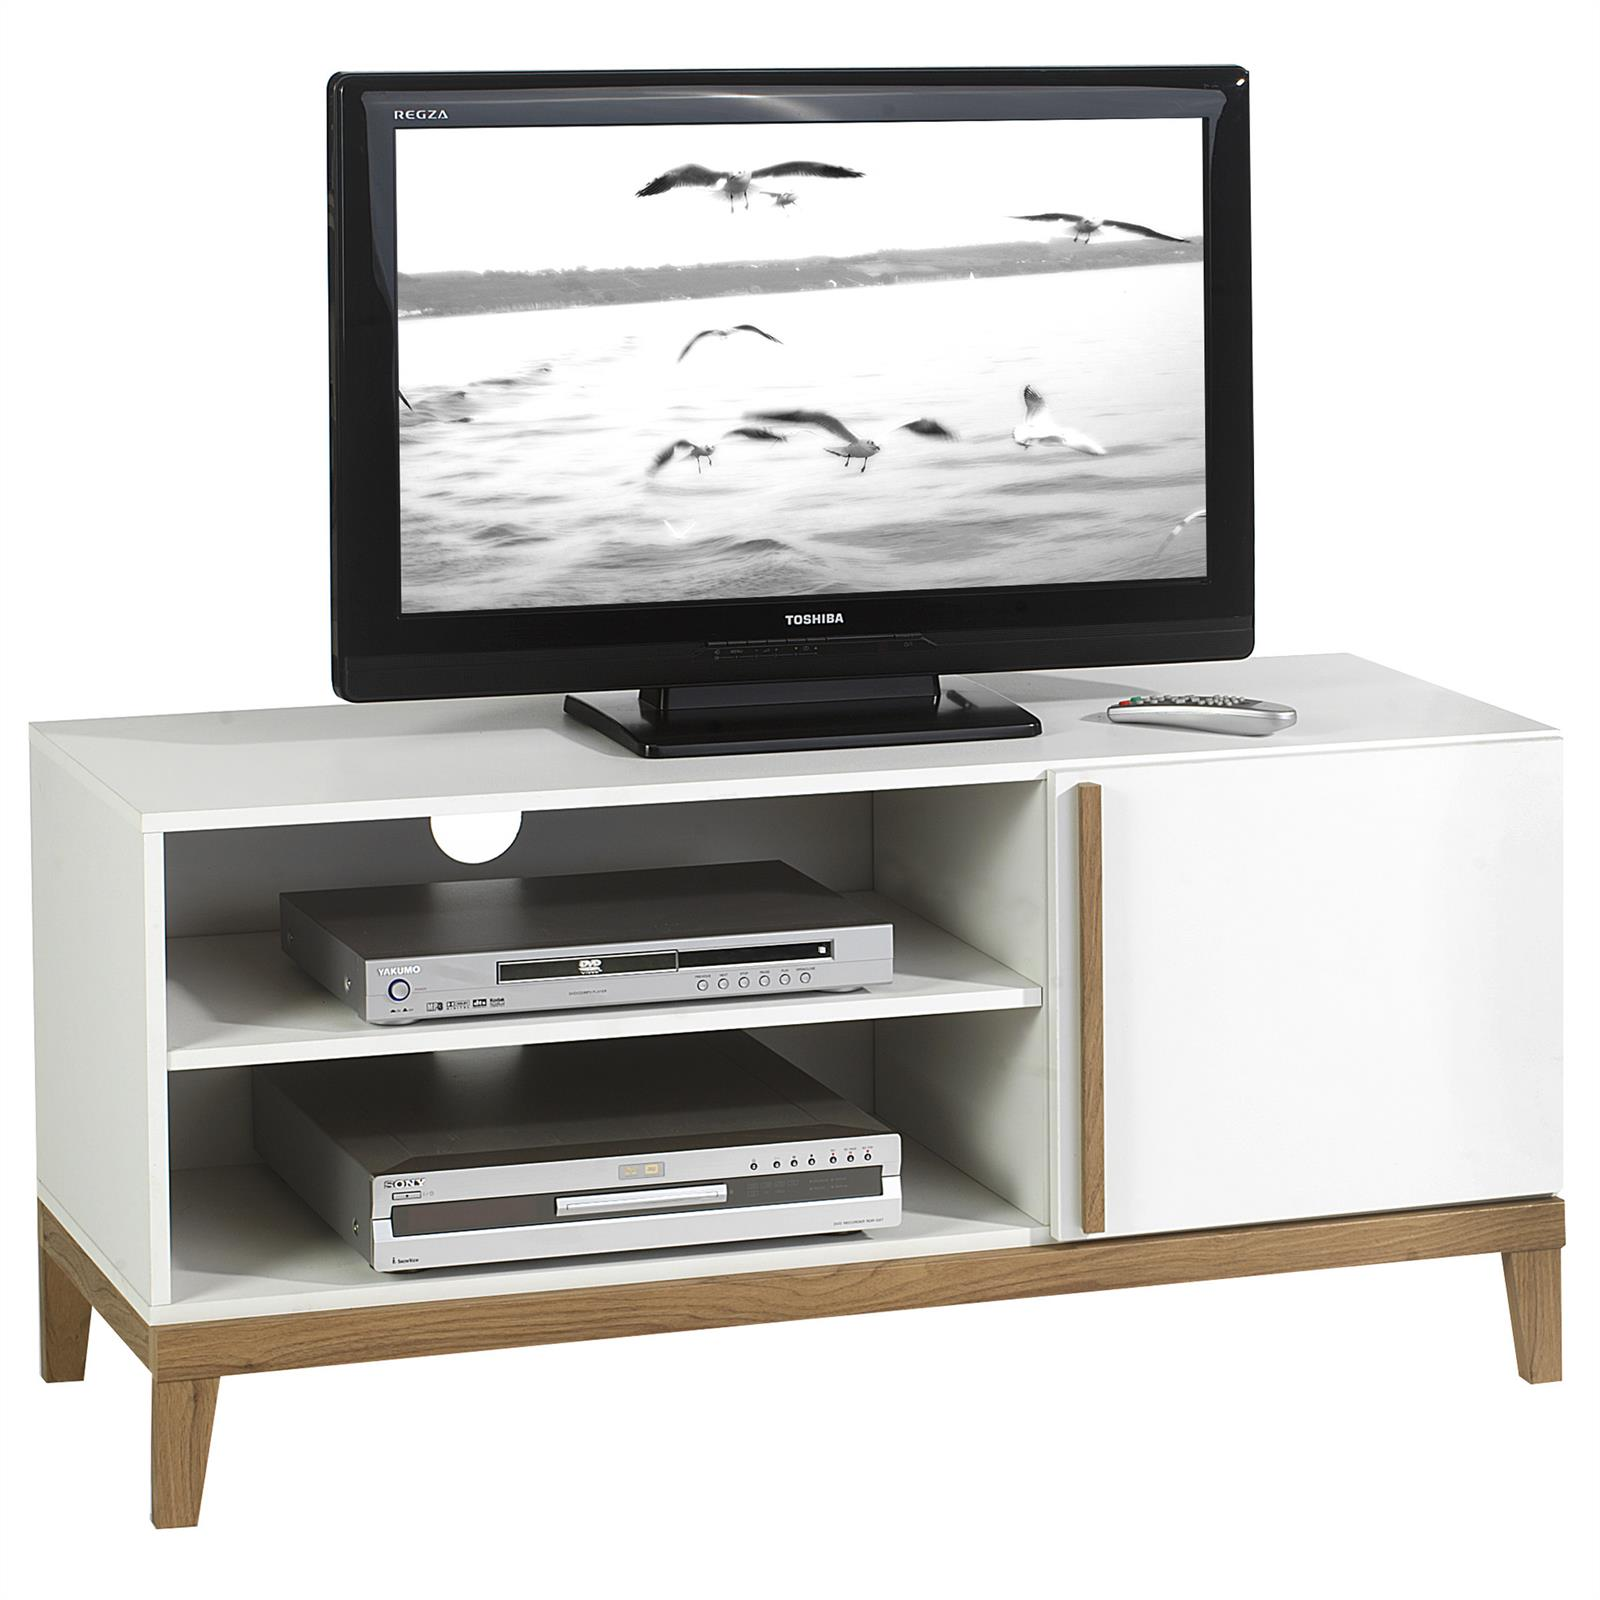 Meuble tv riga 2 niches 1 porte blanc et bois mobil - Meuble tv high tech ...